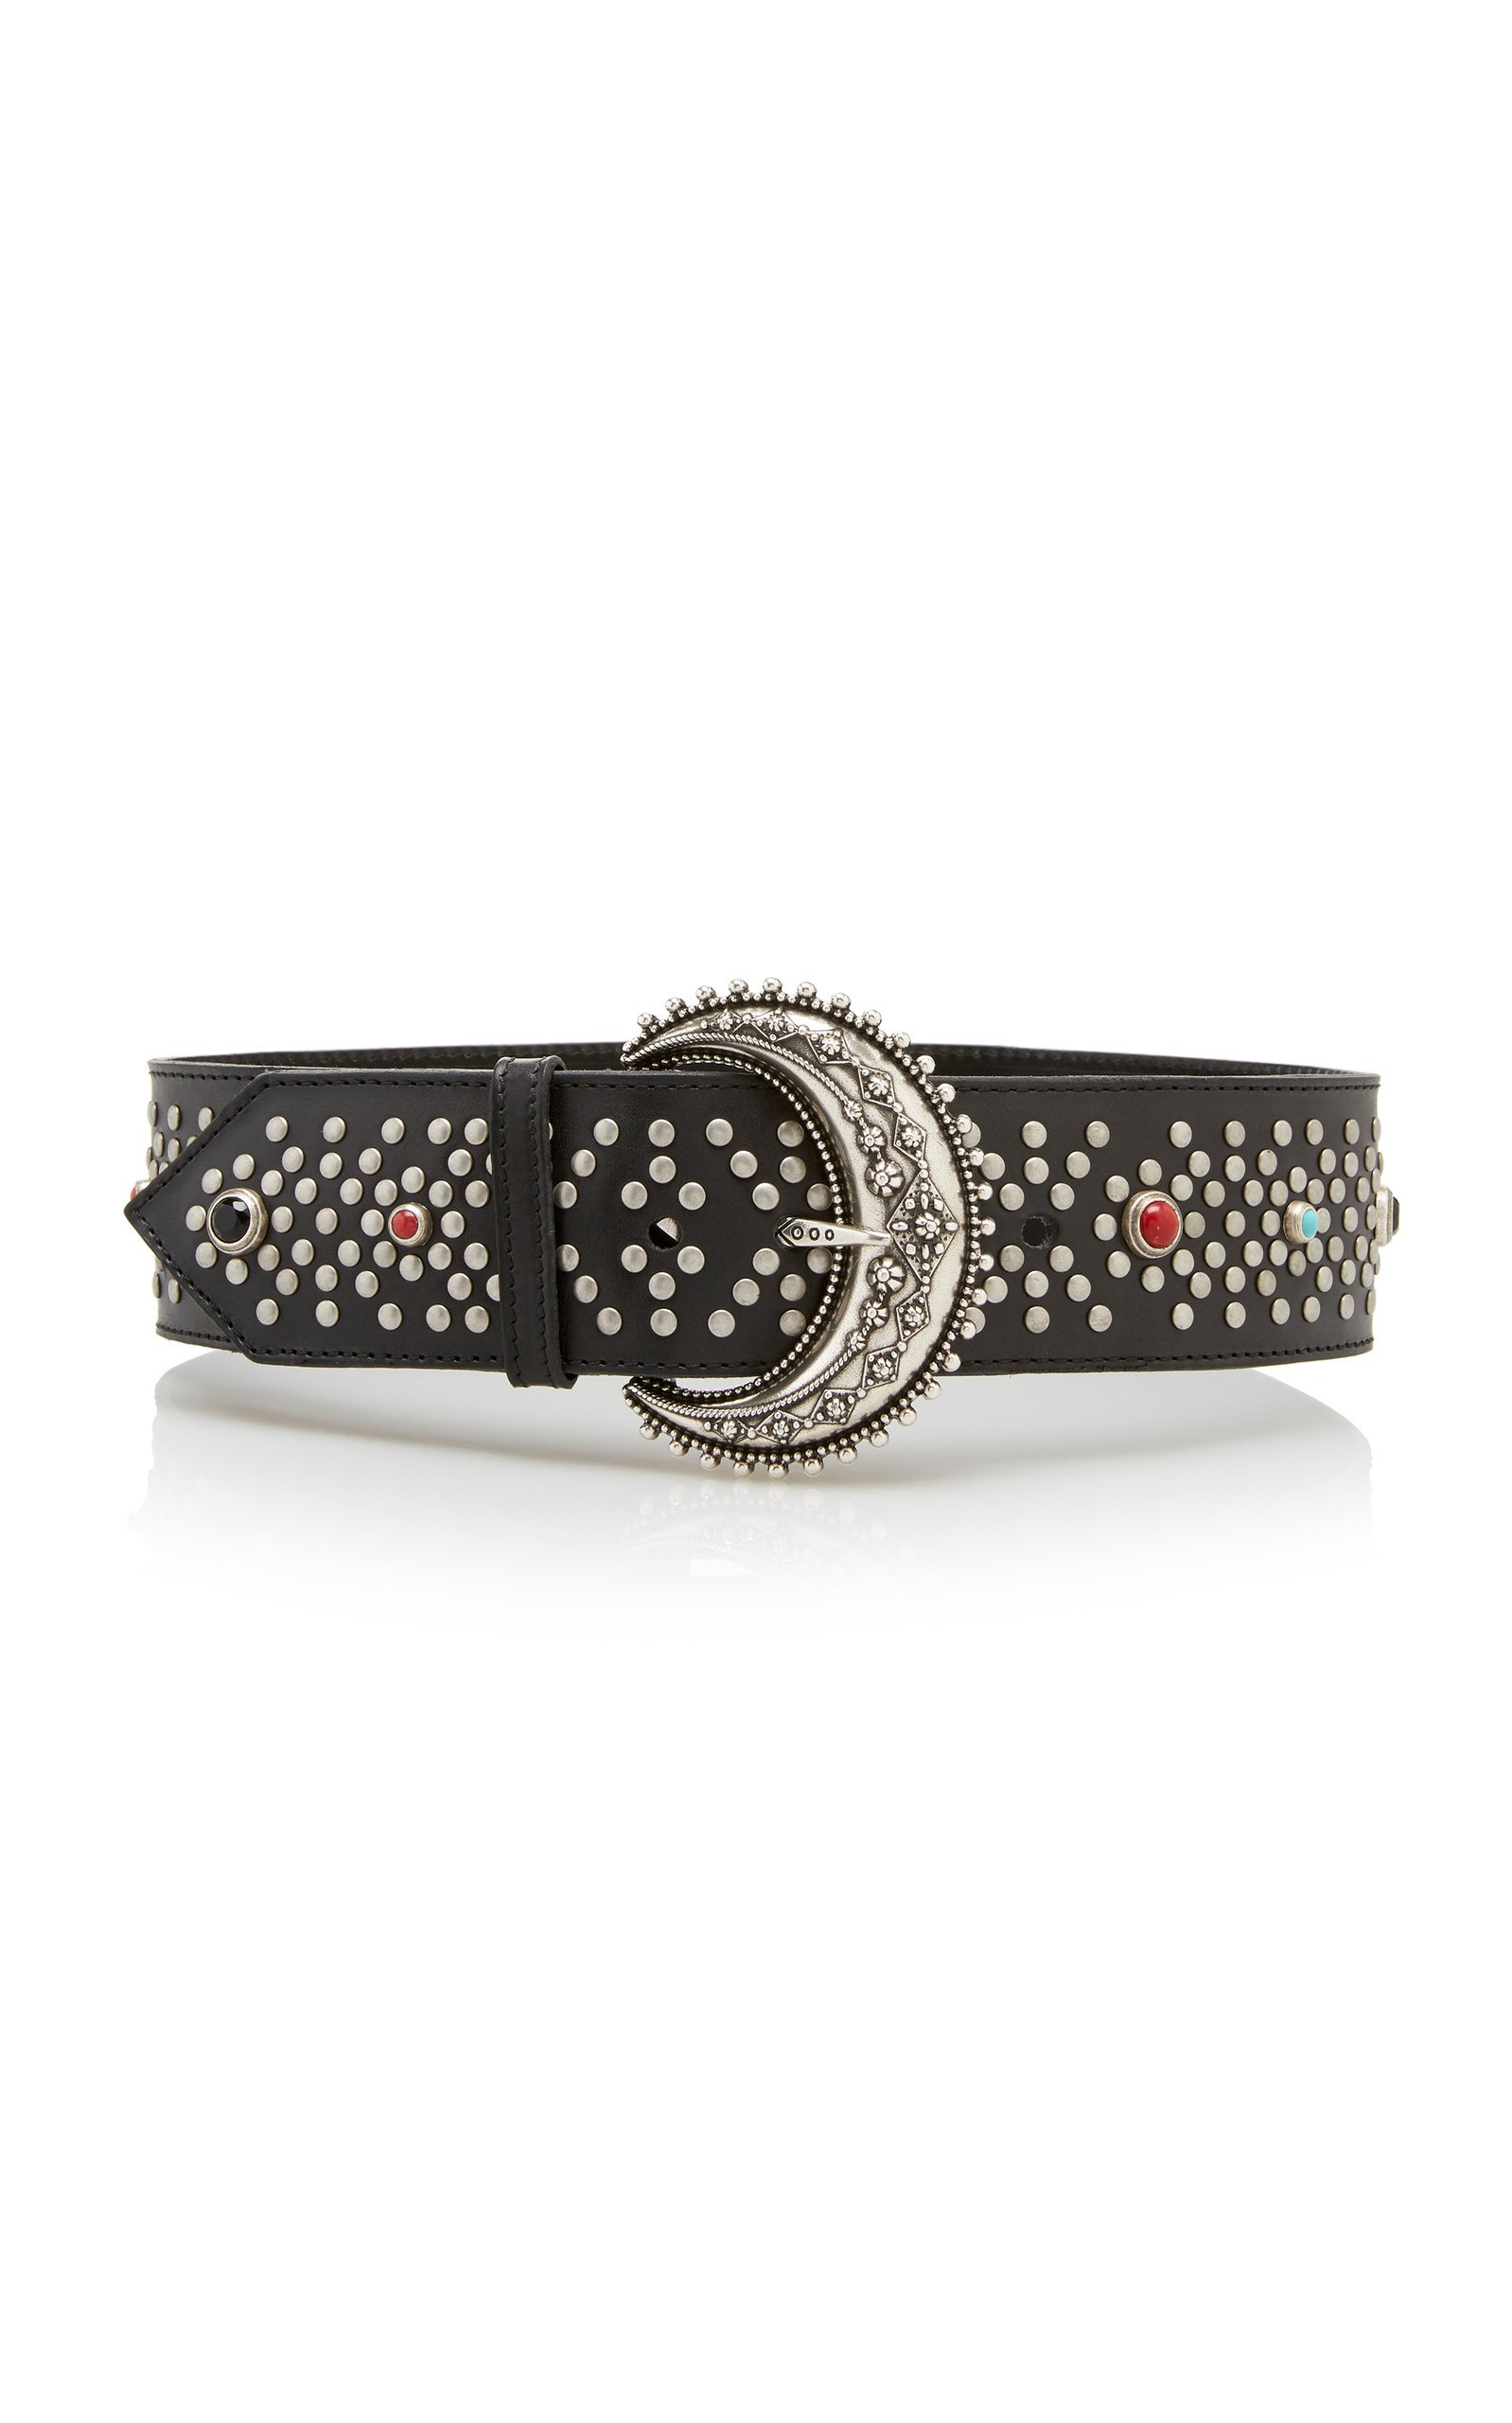 Etro Wide Studded Leather Belt Size: XL